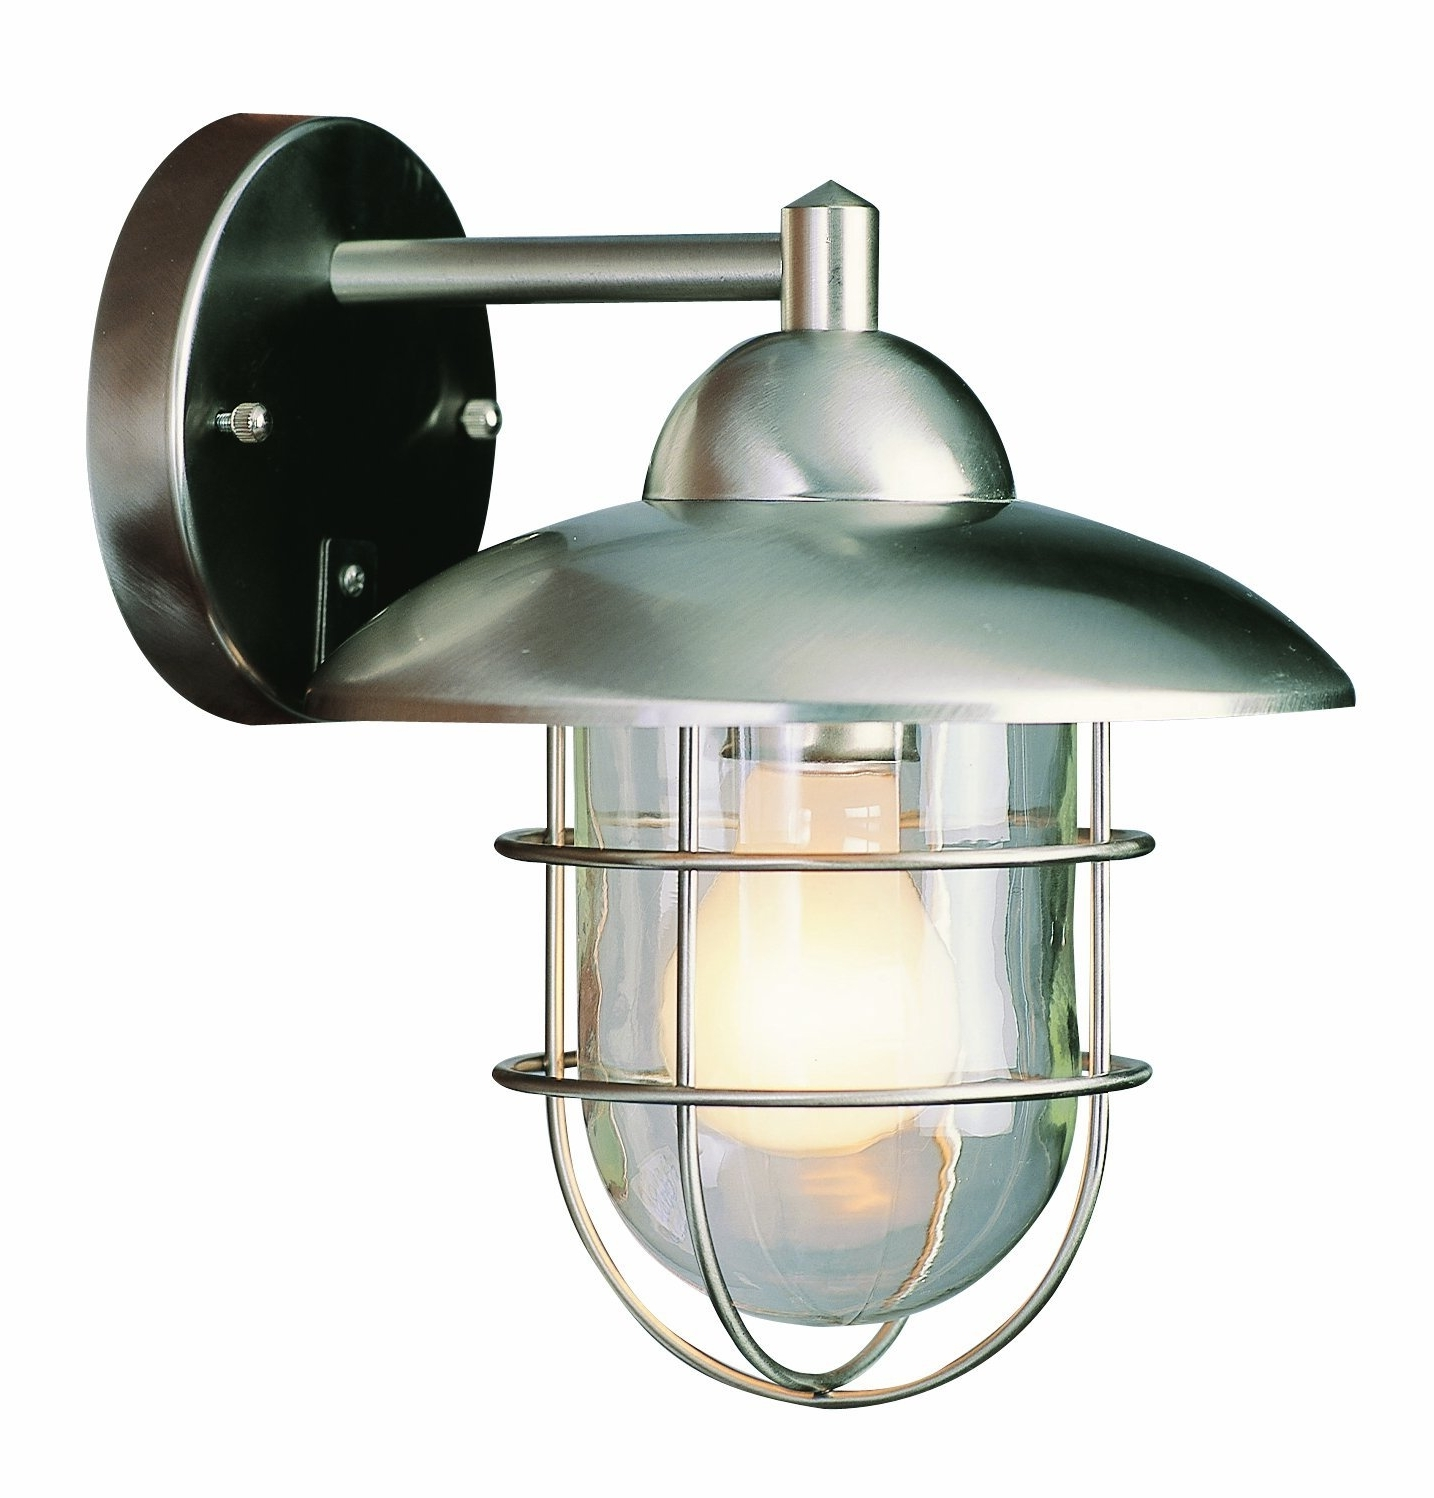 Latest Light : Furniture White Modern Bronze Motion Activated Outdoor Wall Within Outdoor Wall Mount Lighting Fixtures (View 9 of 20)